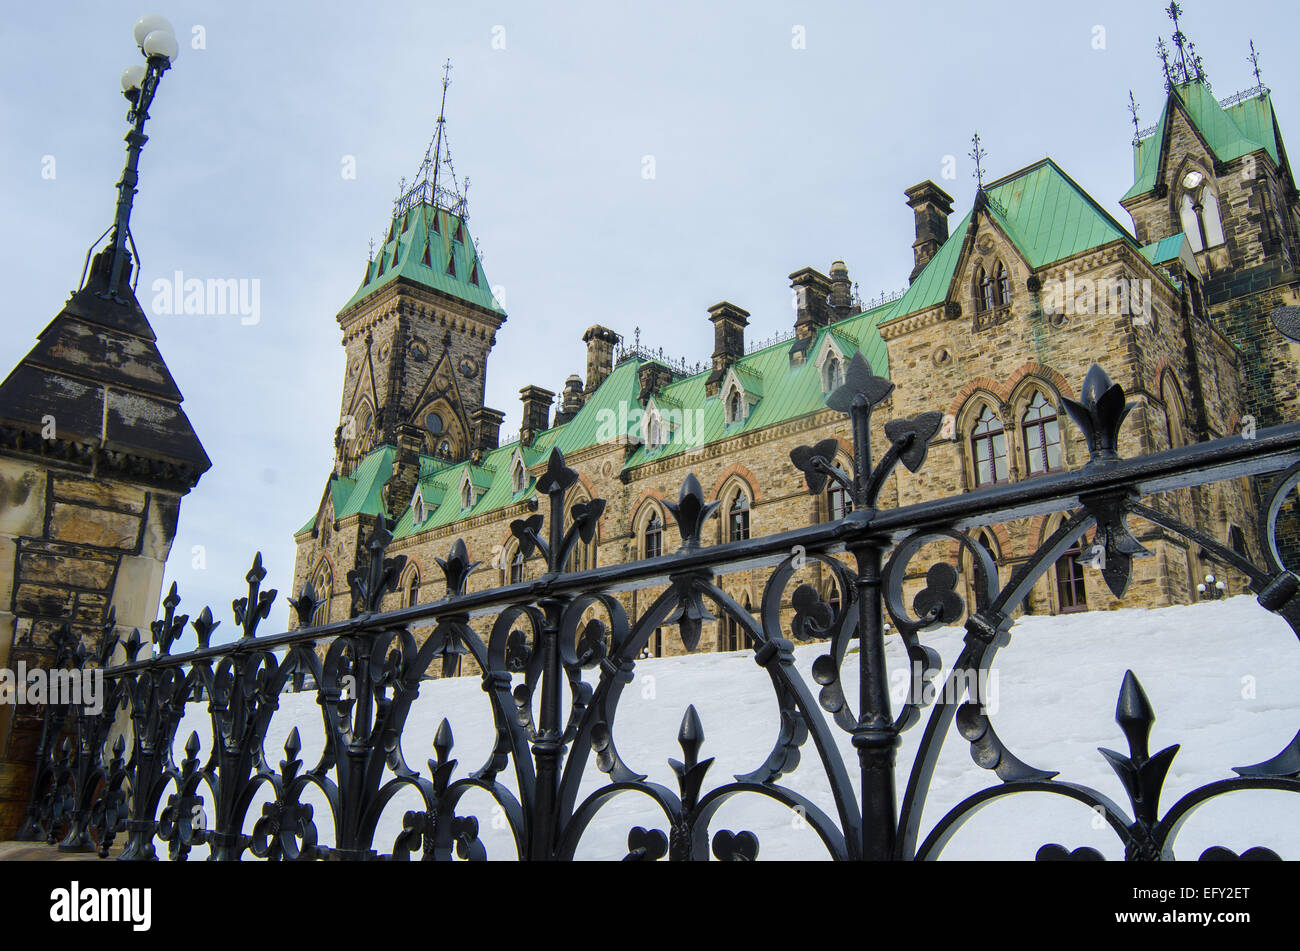 Ottawa's Parliament Hill houses Canada's national legislature and attracts three million visitors annually. Stock Photo